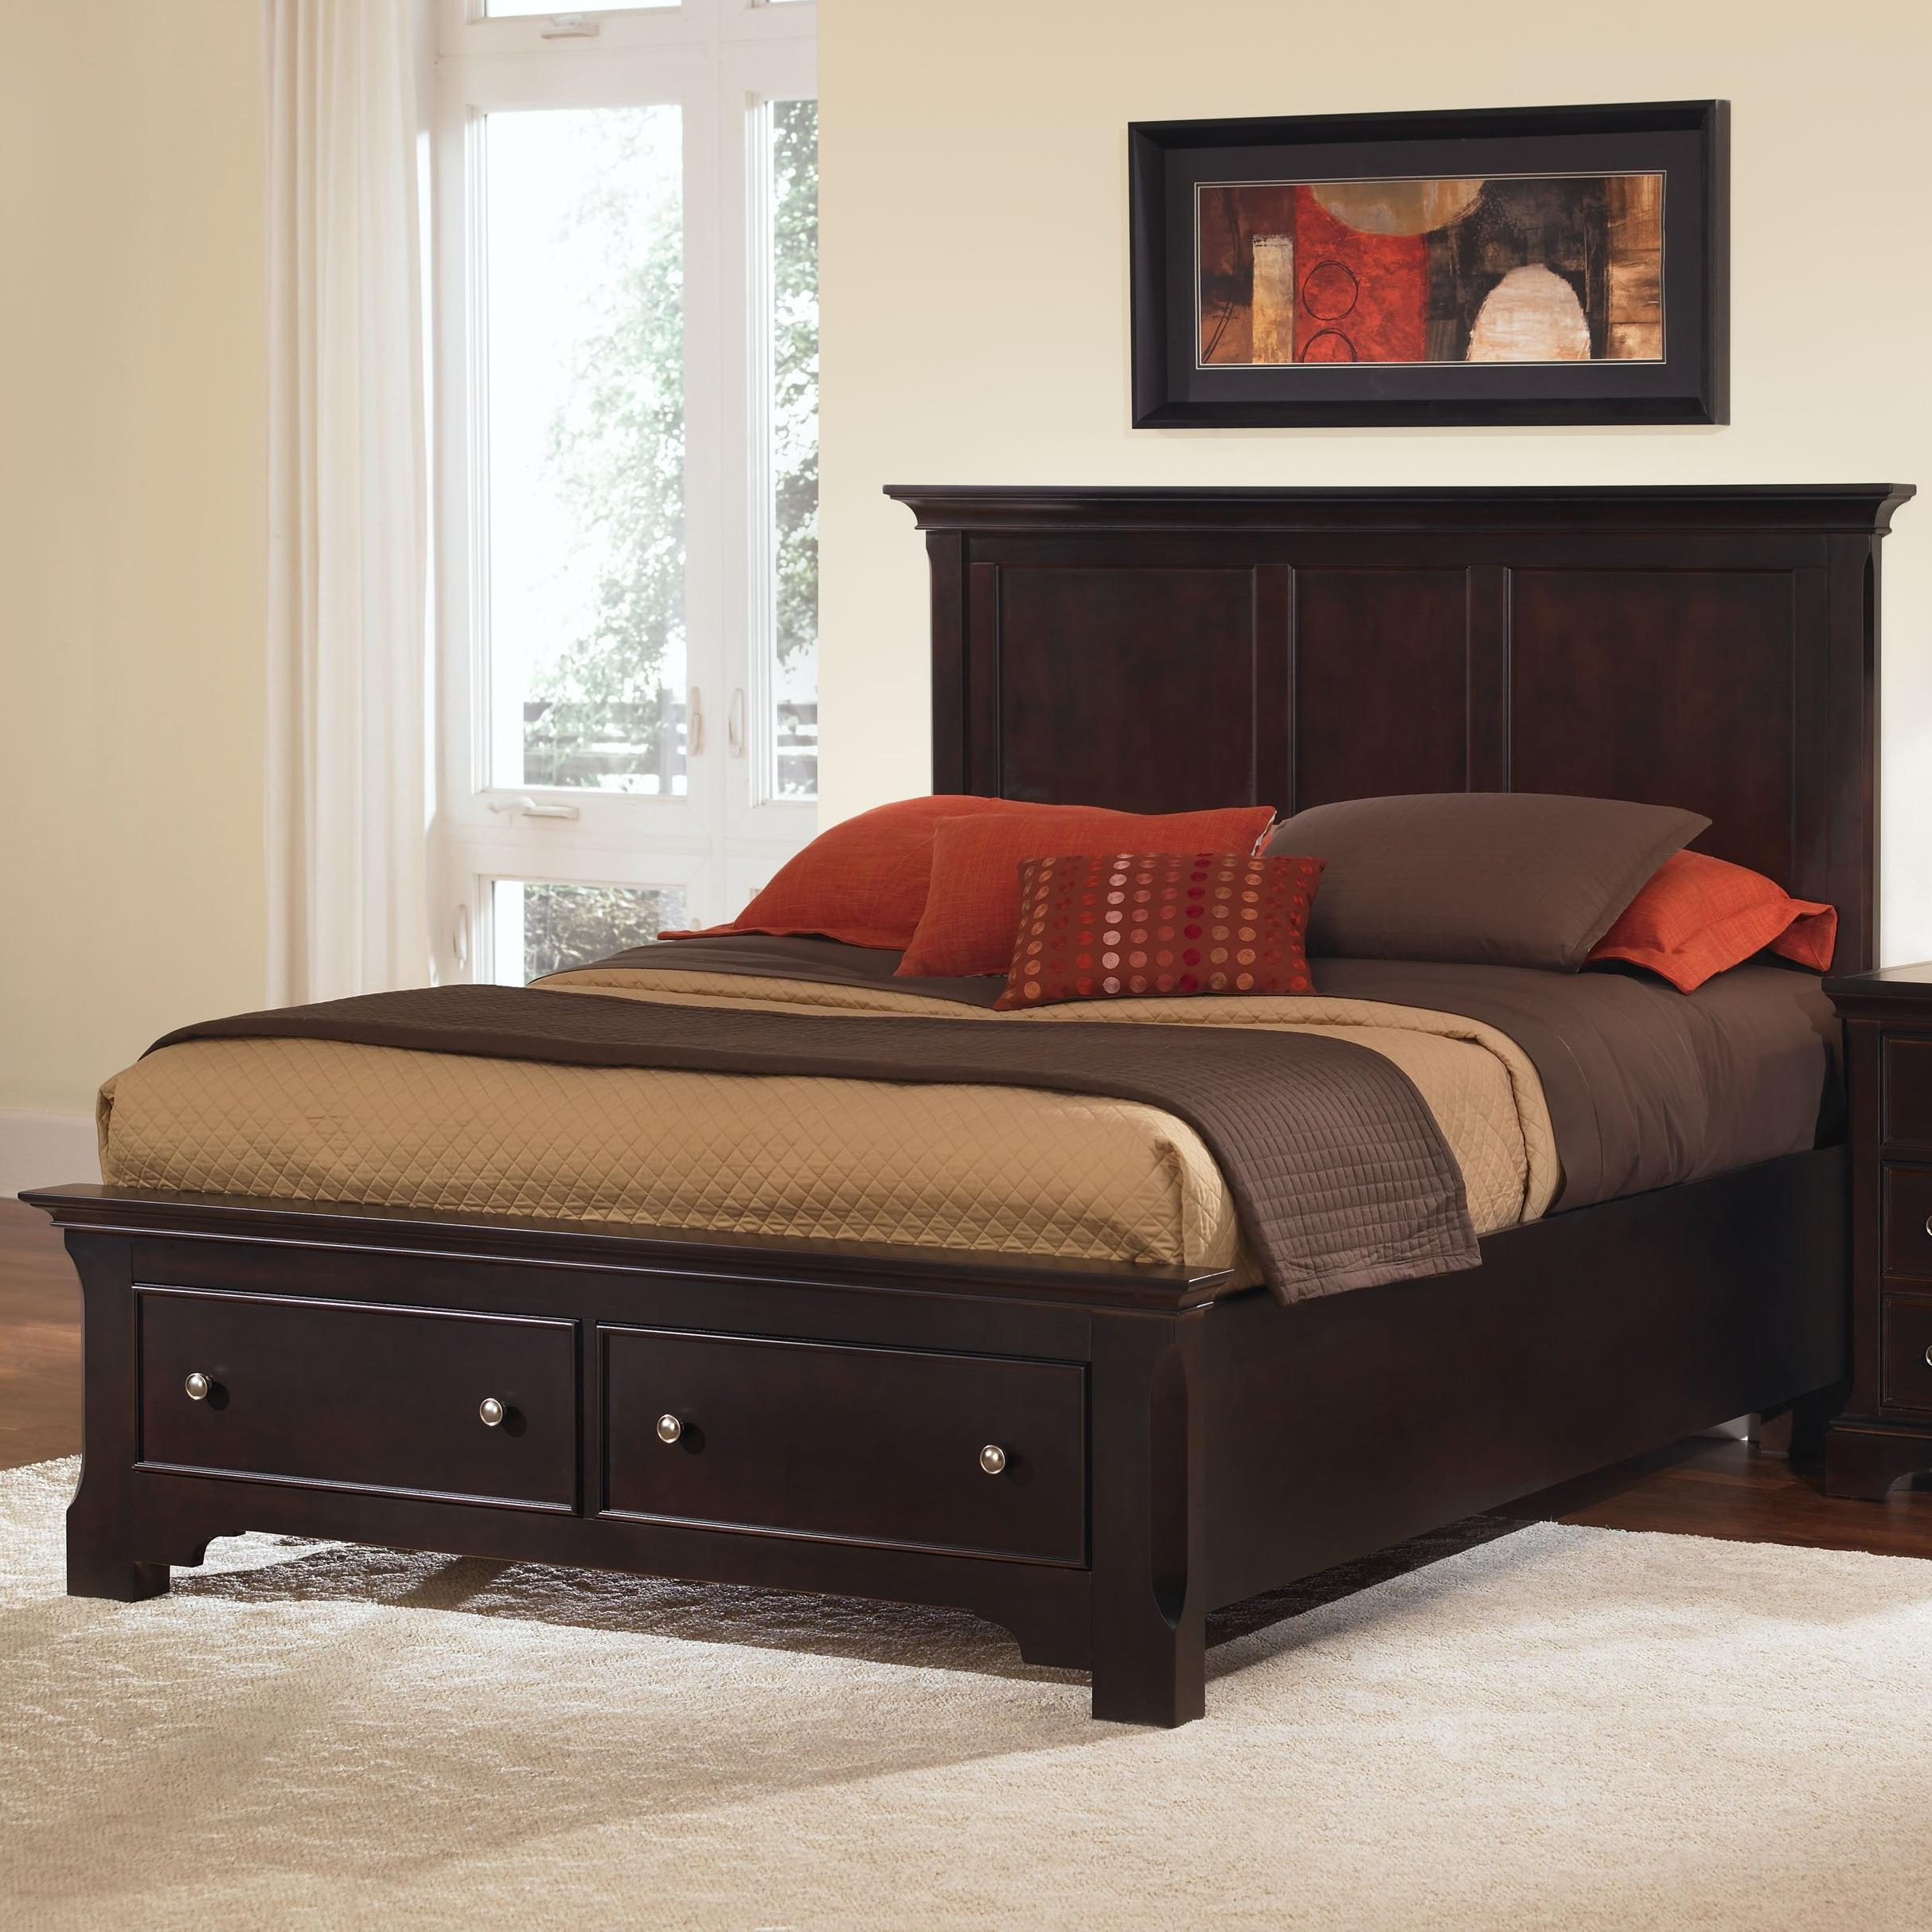 Vaughan Bassett Forsyth Full Panel Storage Bed - Item Number: BB76-558+-046-301-444T